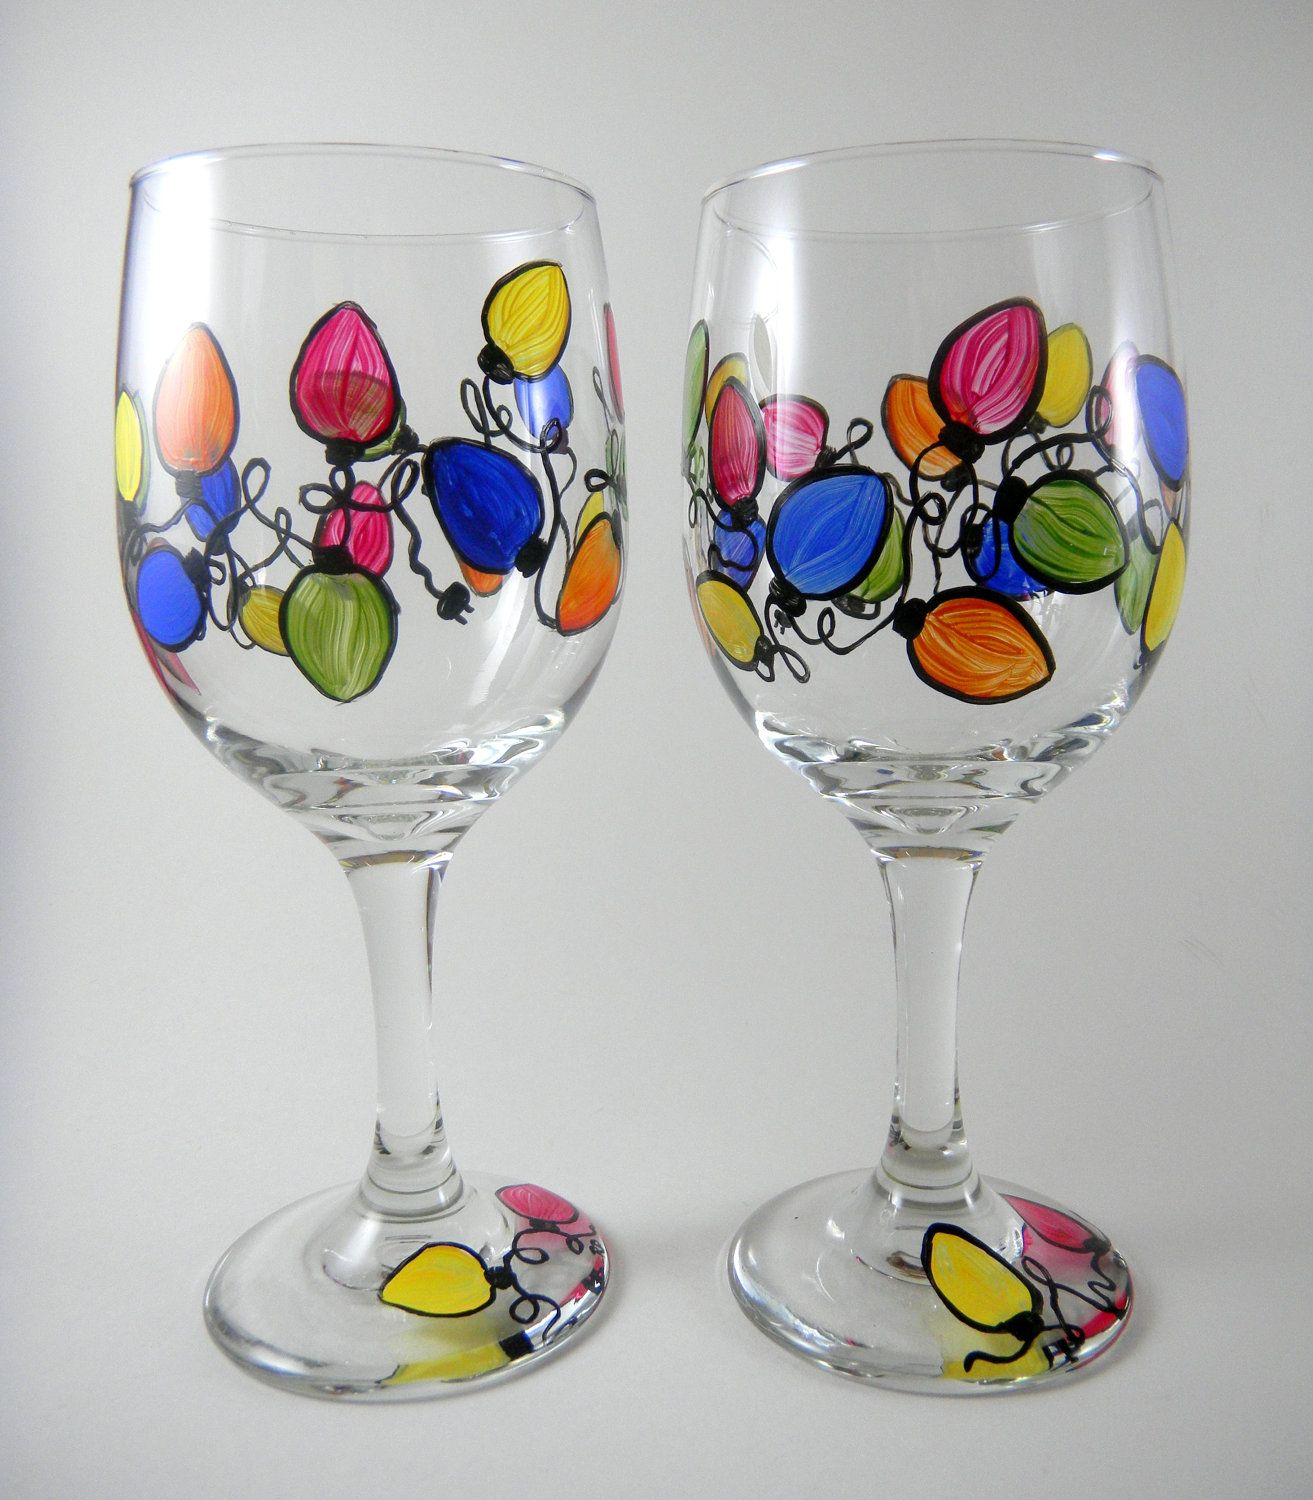 Christmas Lights, Multi-colored string, set of 2 hand painted wine glasses CYBER MONDAY. $35.00, via Etsy.